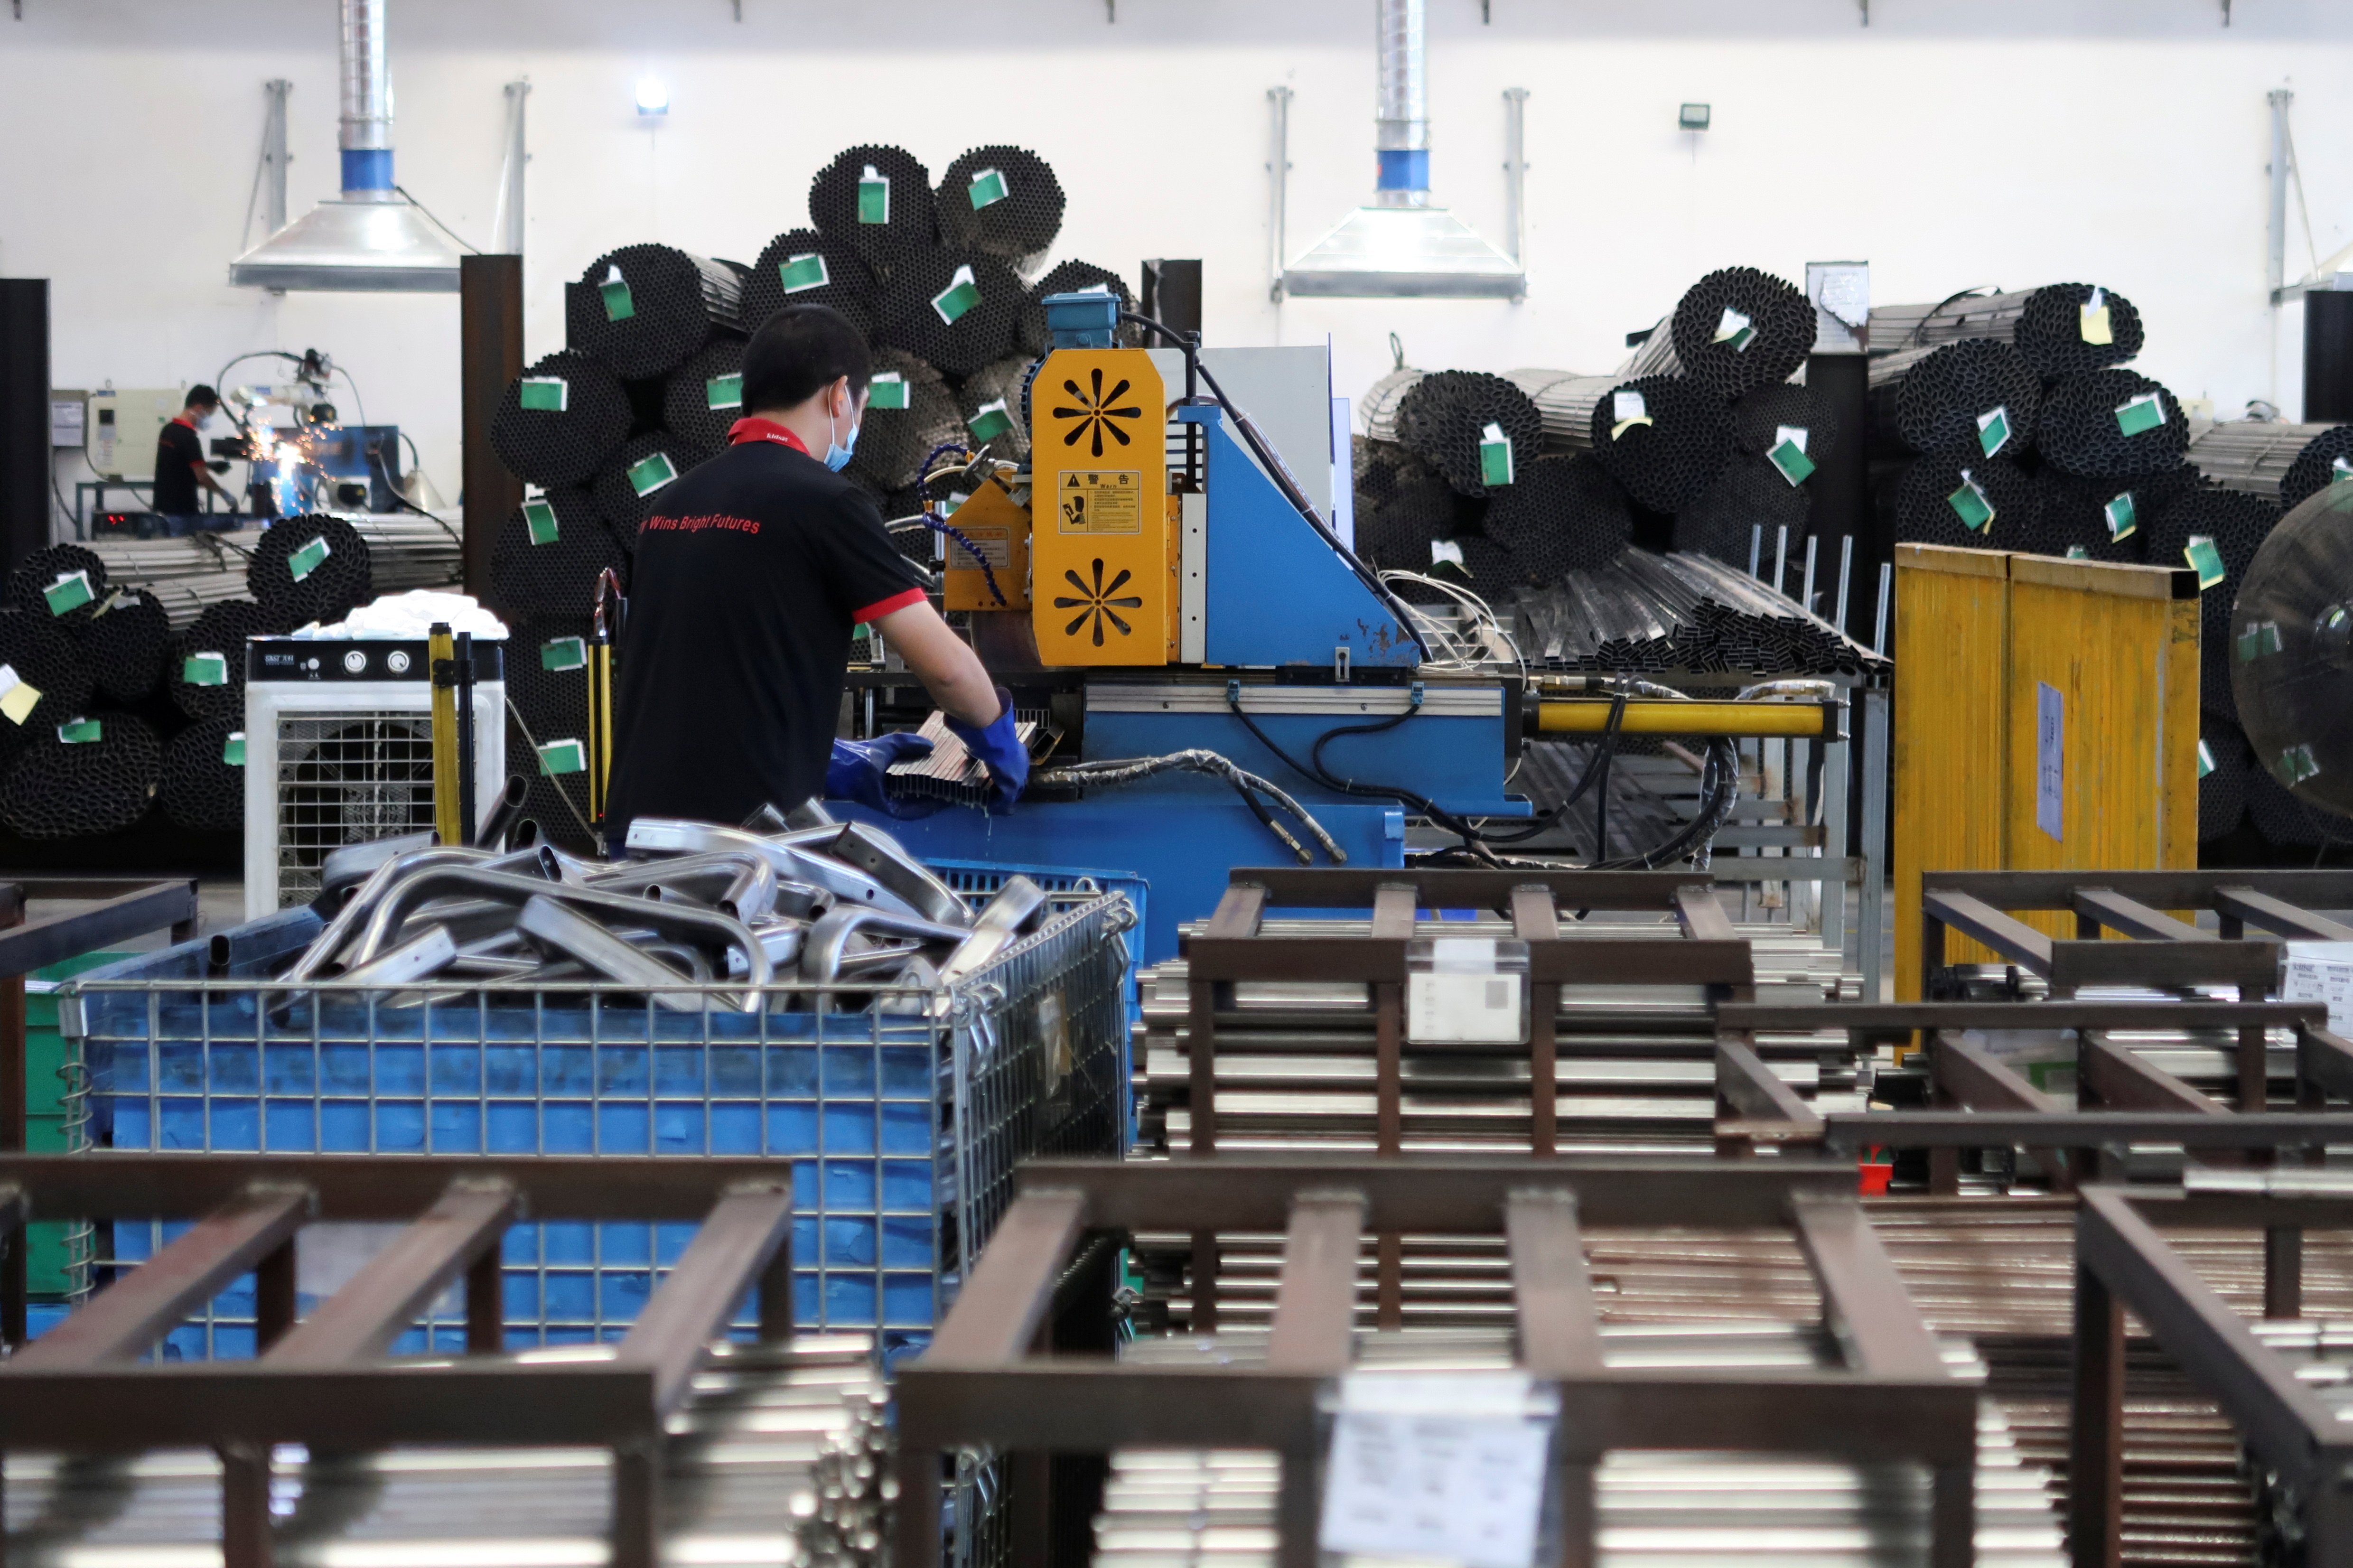 Employees work on the production line of American infant product and toy manufacturer Kids II Inc. at a factory in Jiujiang, Jiangxi province, China June 22, 2021. REUTERS/Gabriel Crossley